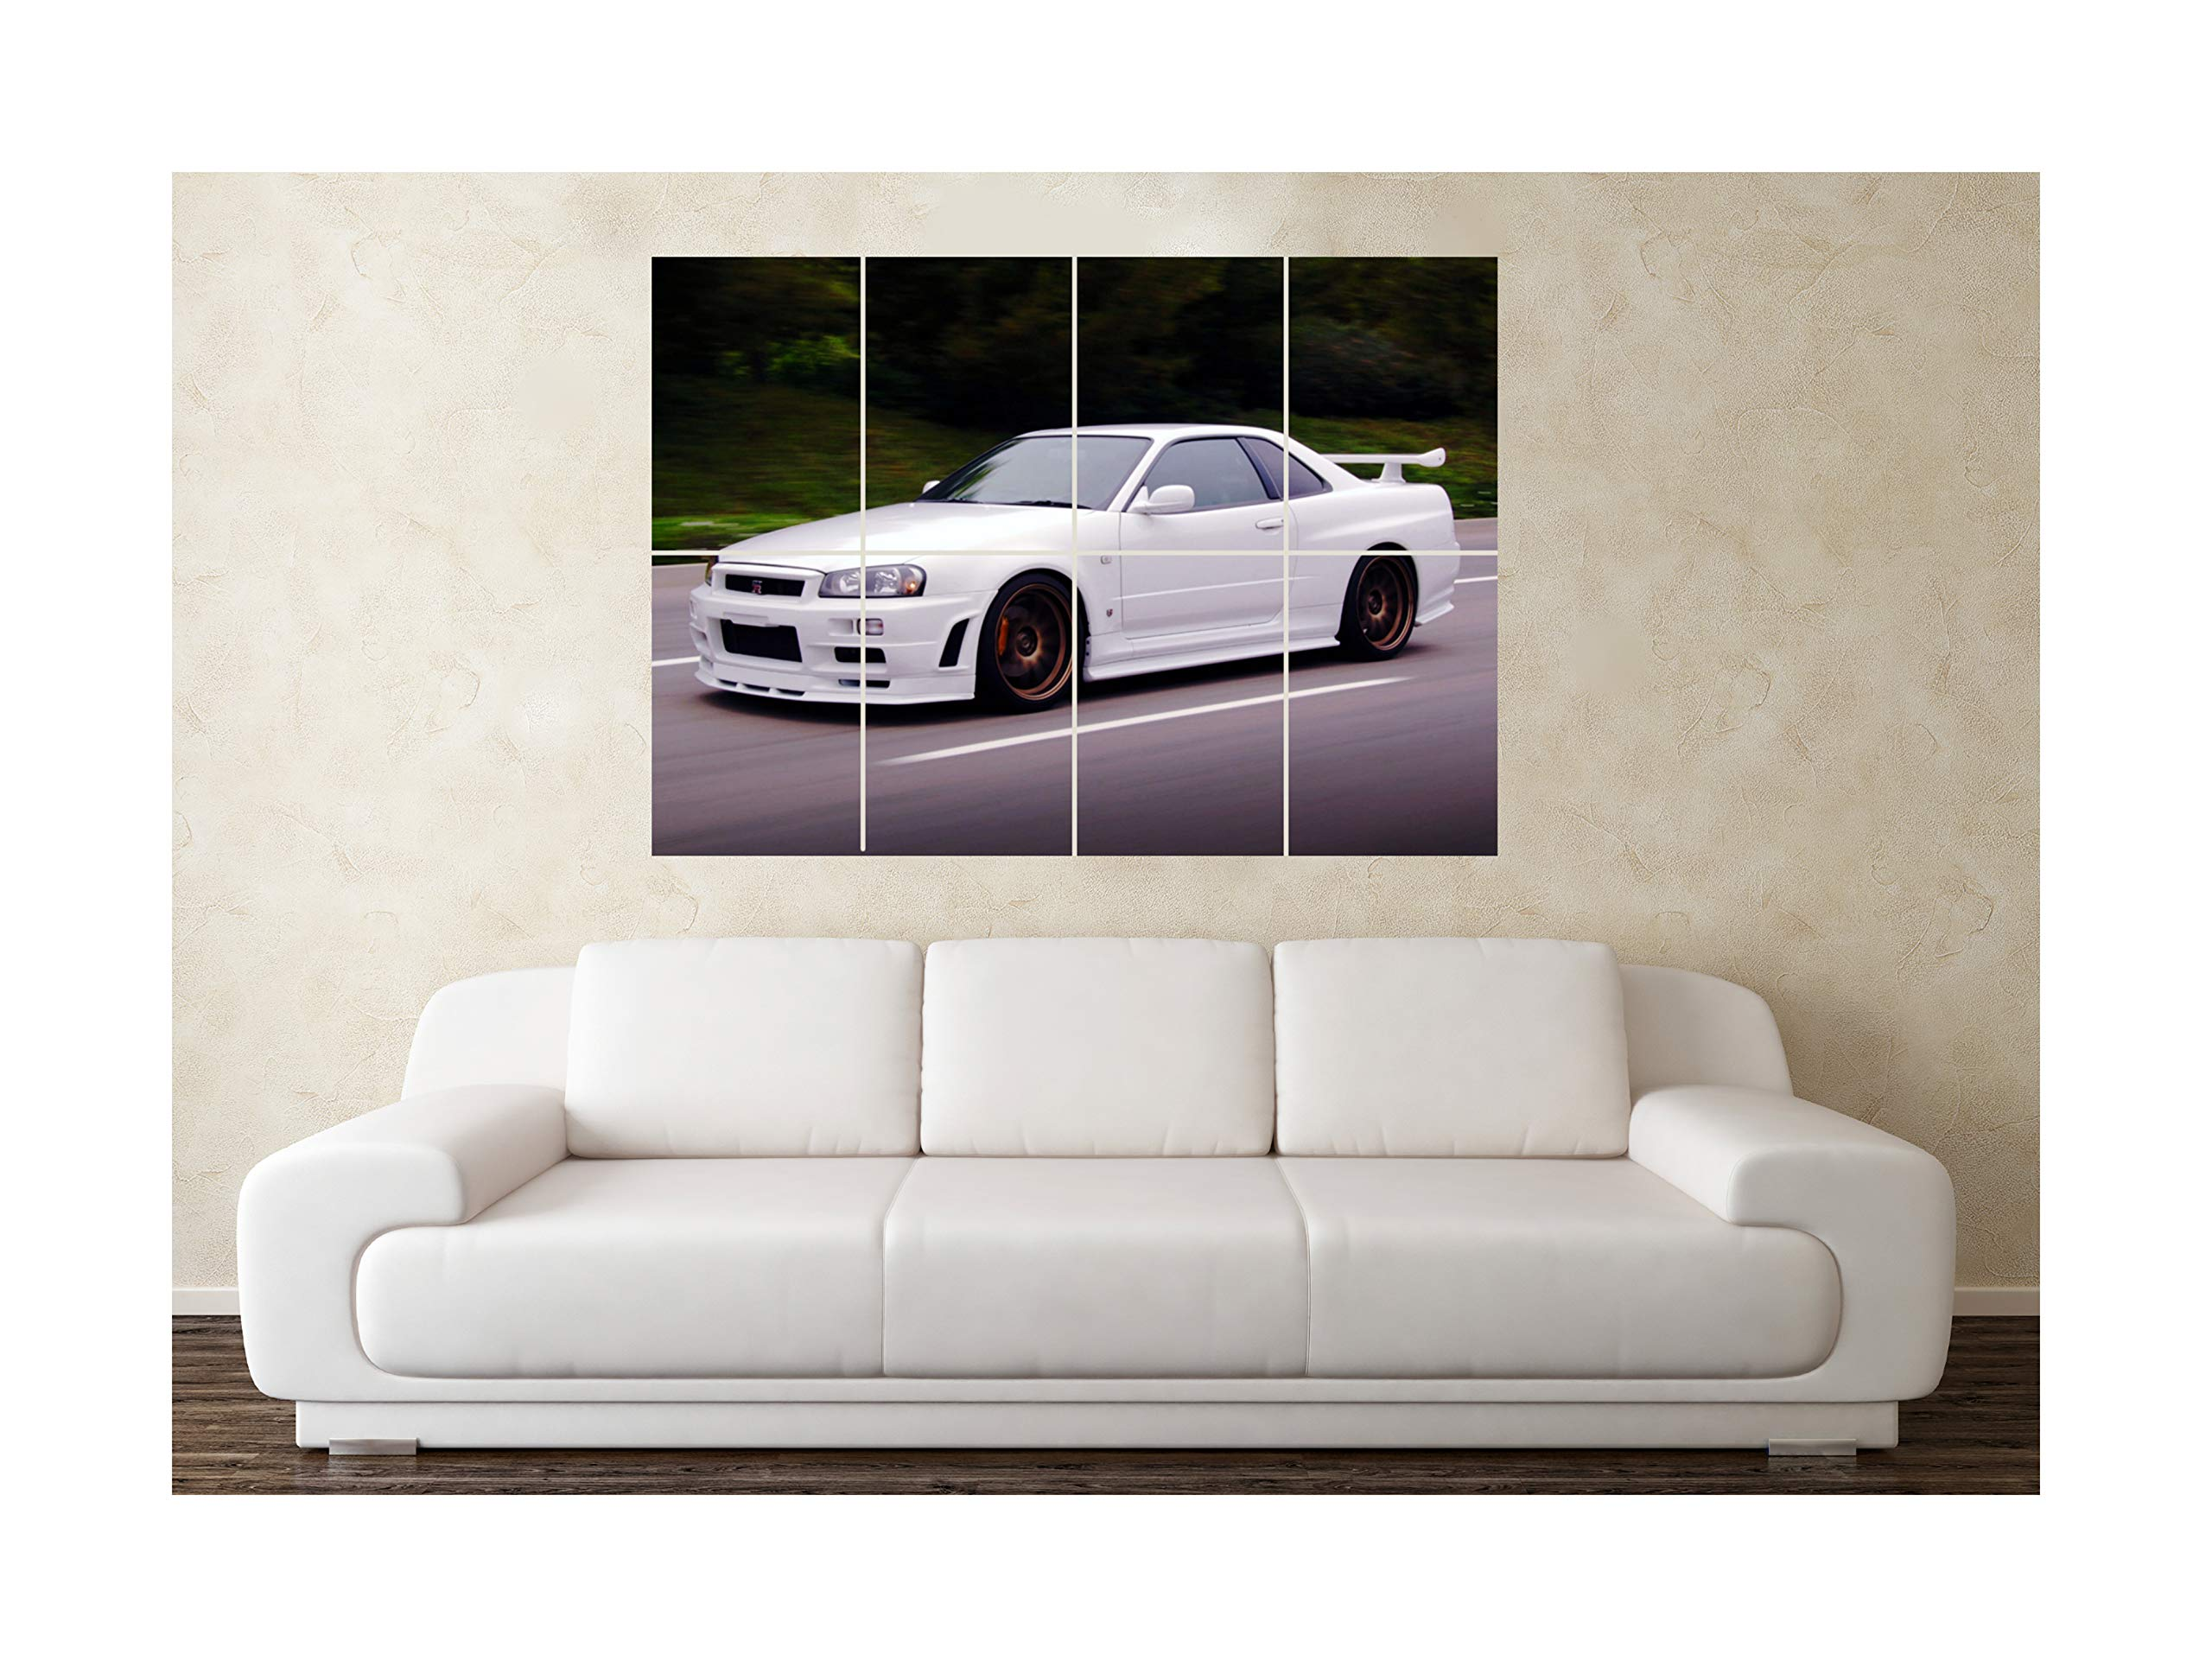 Nissan Skyline R34  Wall Poster Grand format A0 Large Print